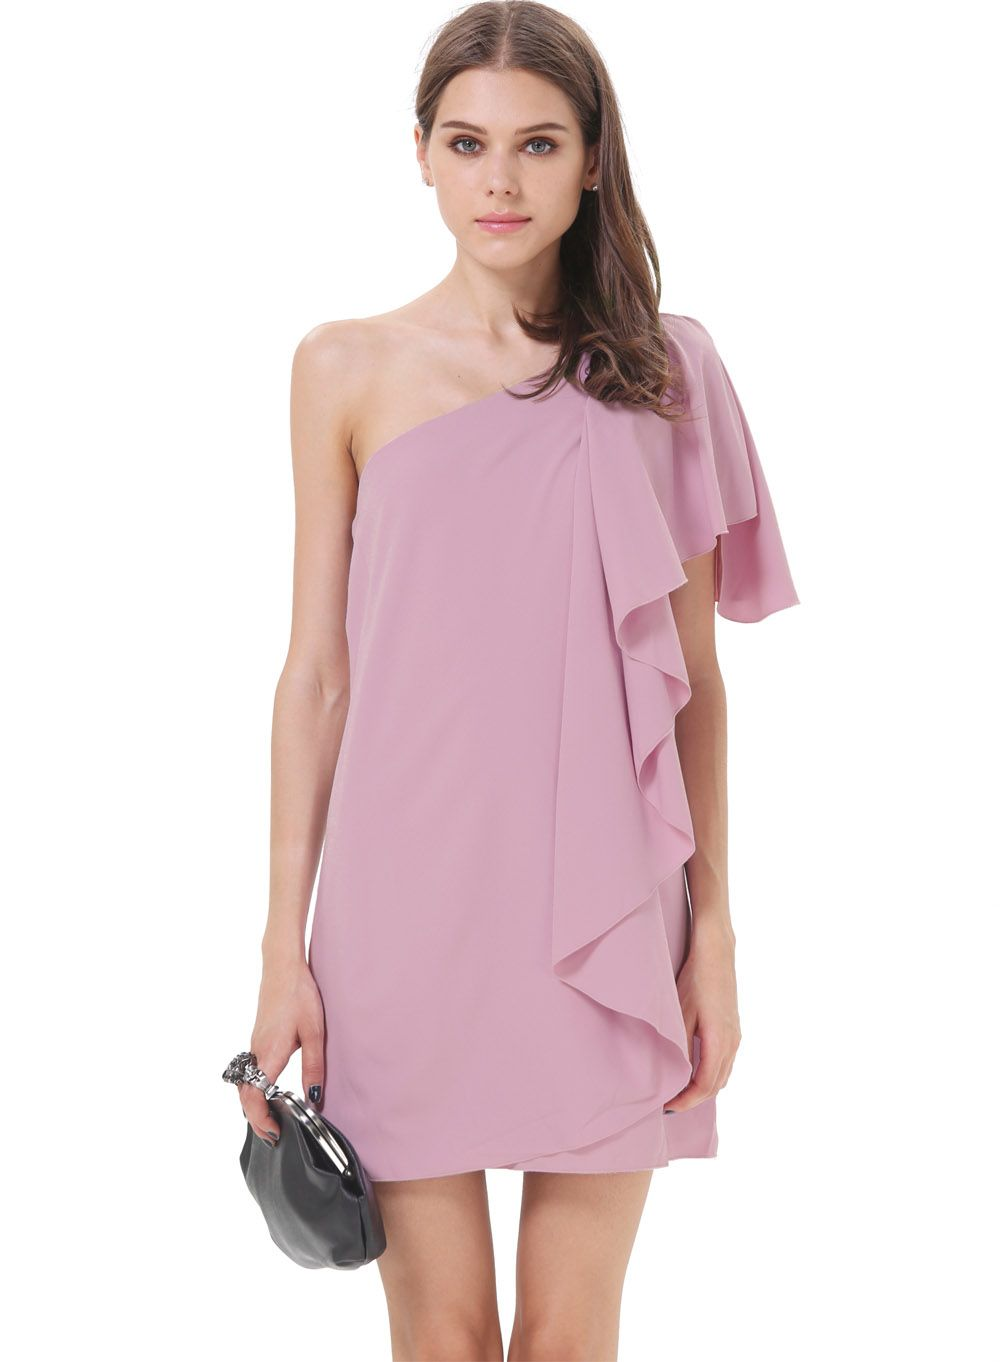 Purple One Shoulder Ruffle Asymmetrical Dress | DRESSES | Pinterest ...